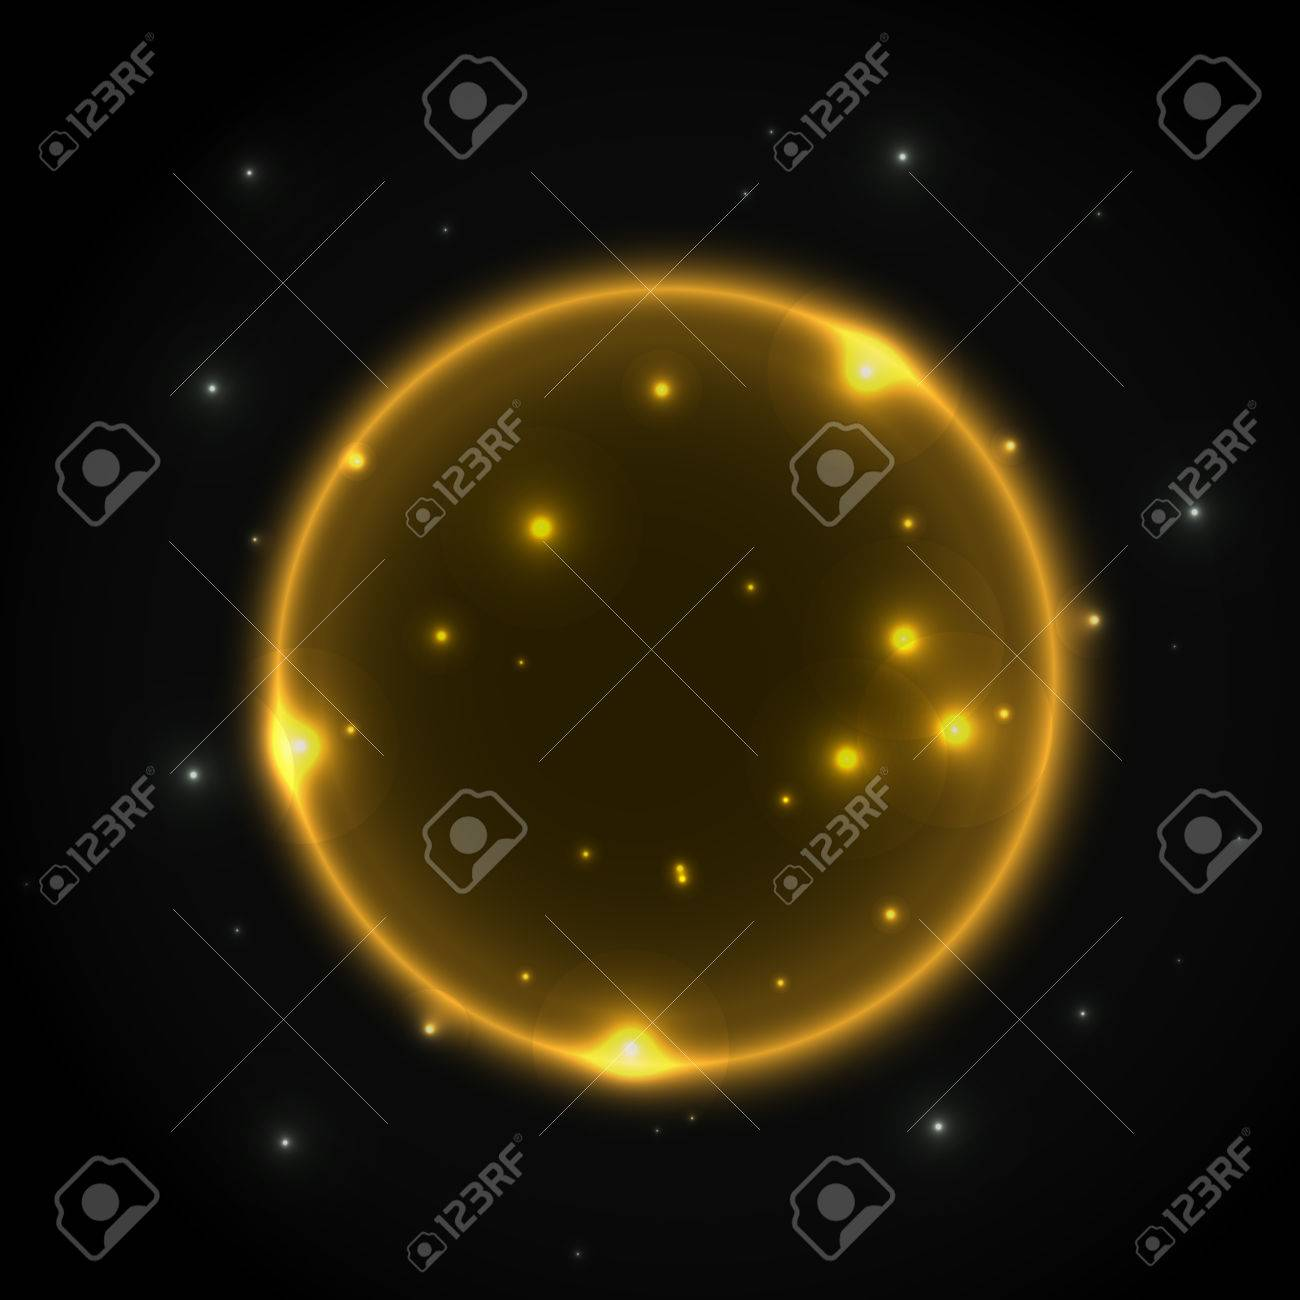 Glowing Universe Planets Space Vector Background With Sparkling Royalty Free Cliparts Vectors And Stock Illustration Image 61926622